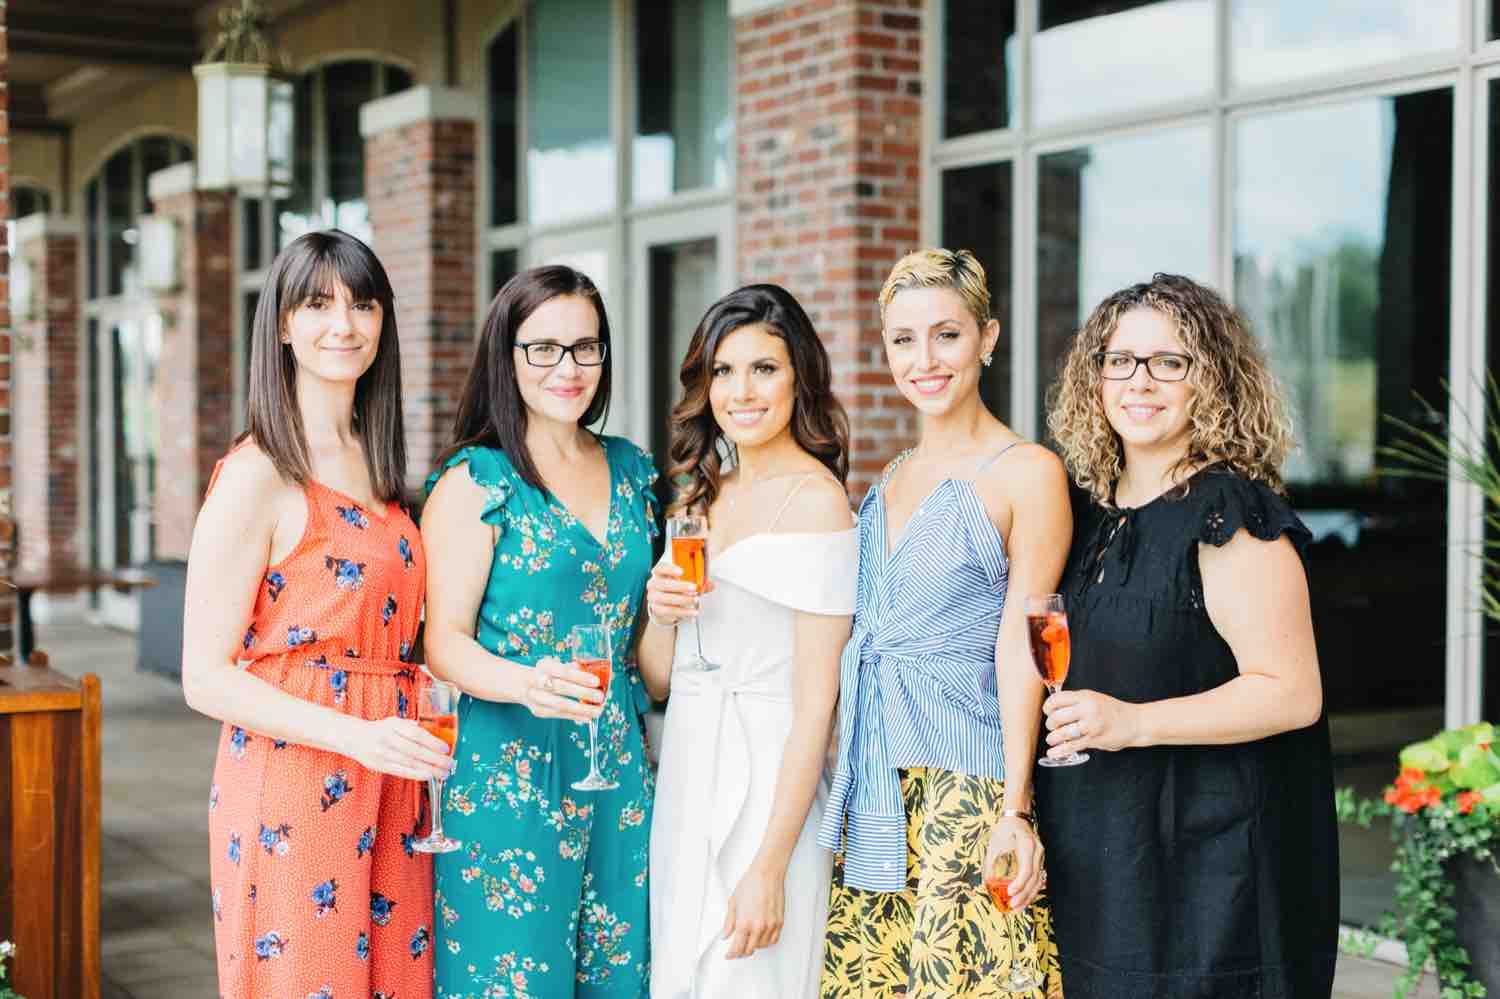 Guests mingling during Bridal shower at Eagles Nest Golf Club in Vaughan